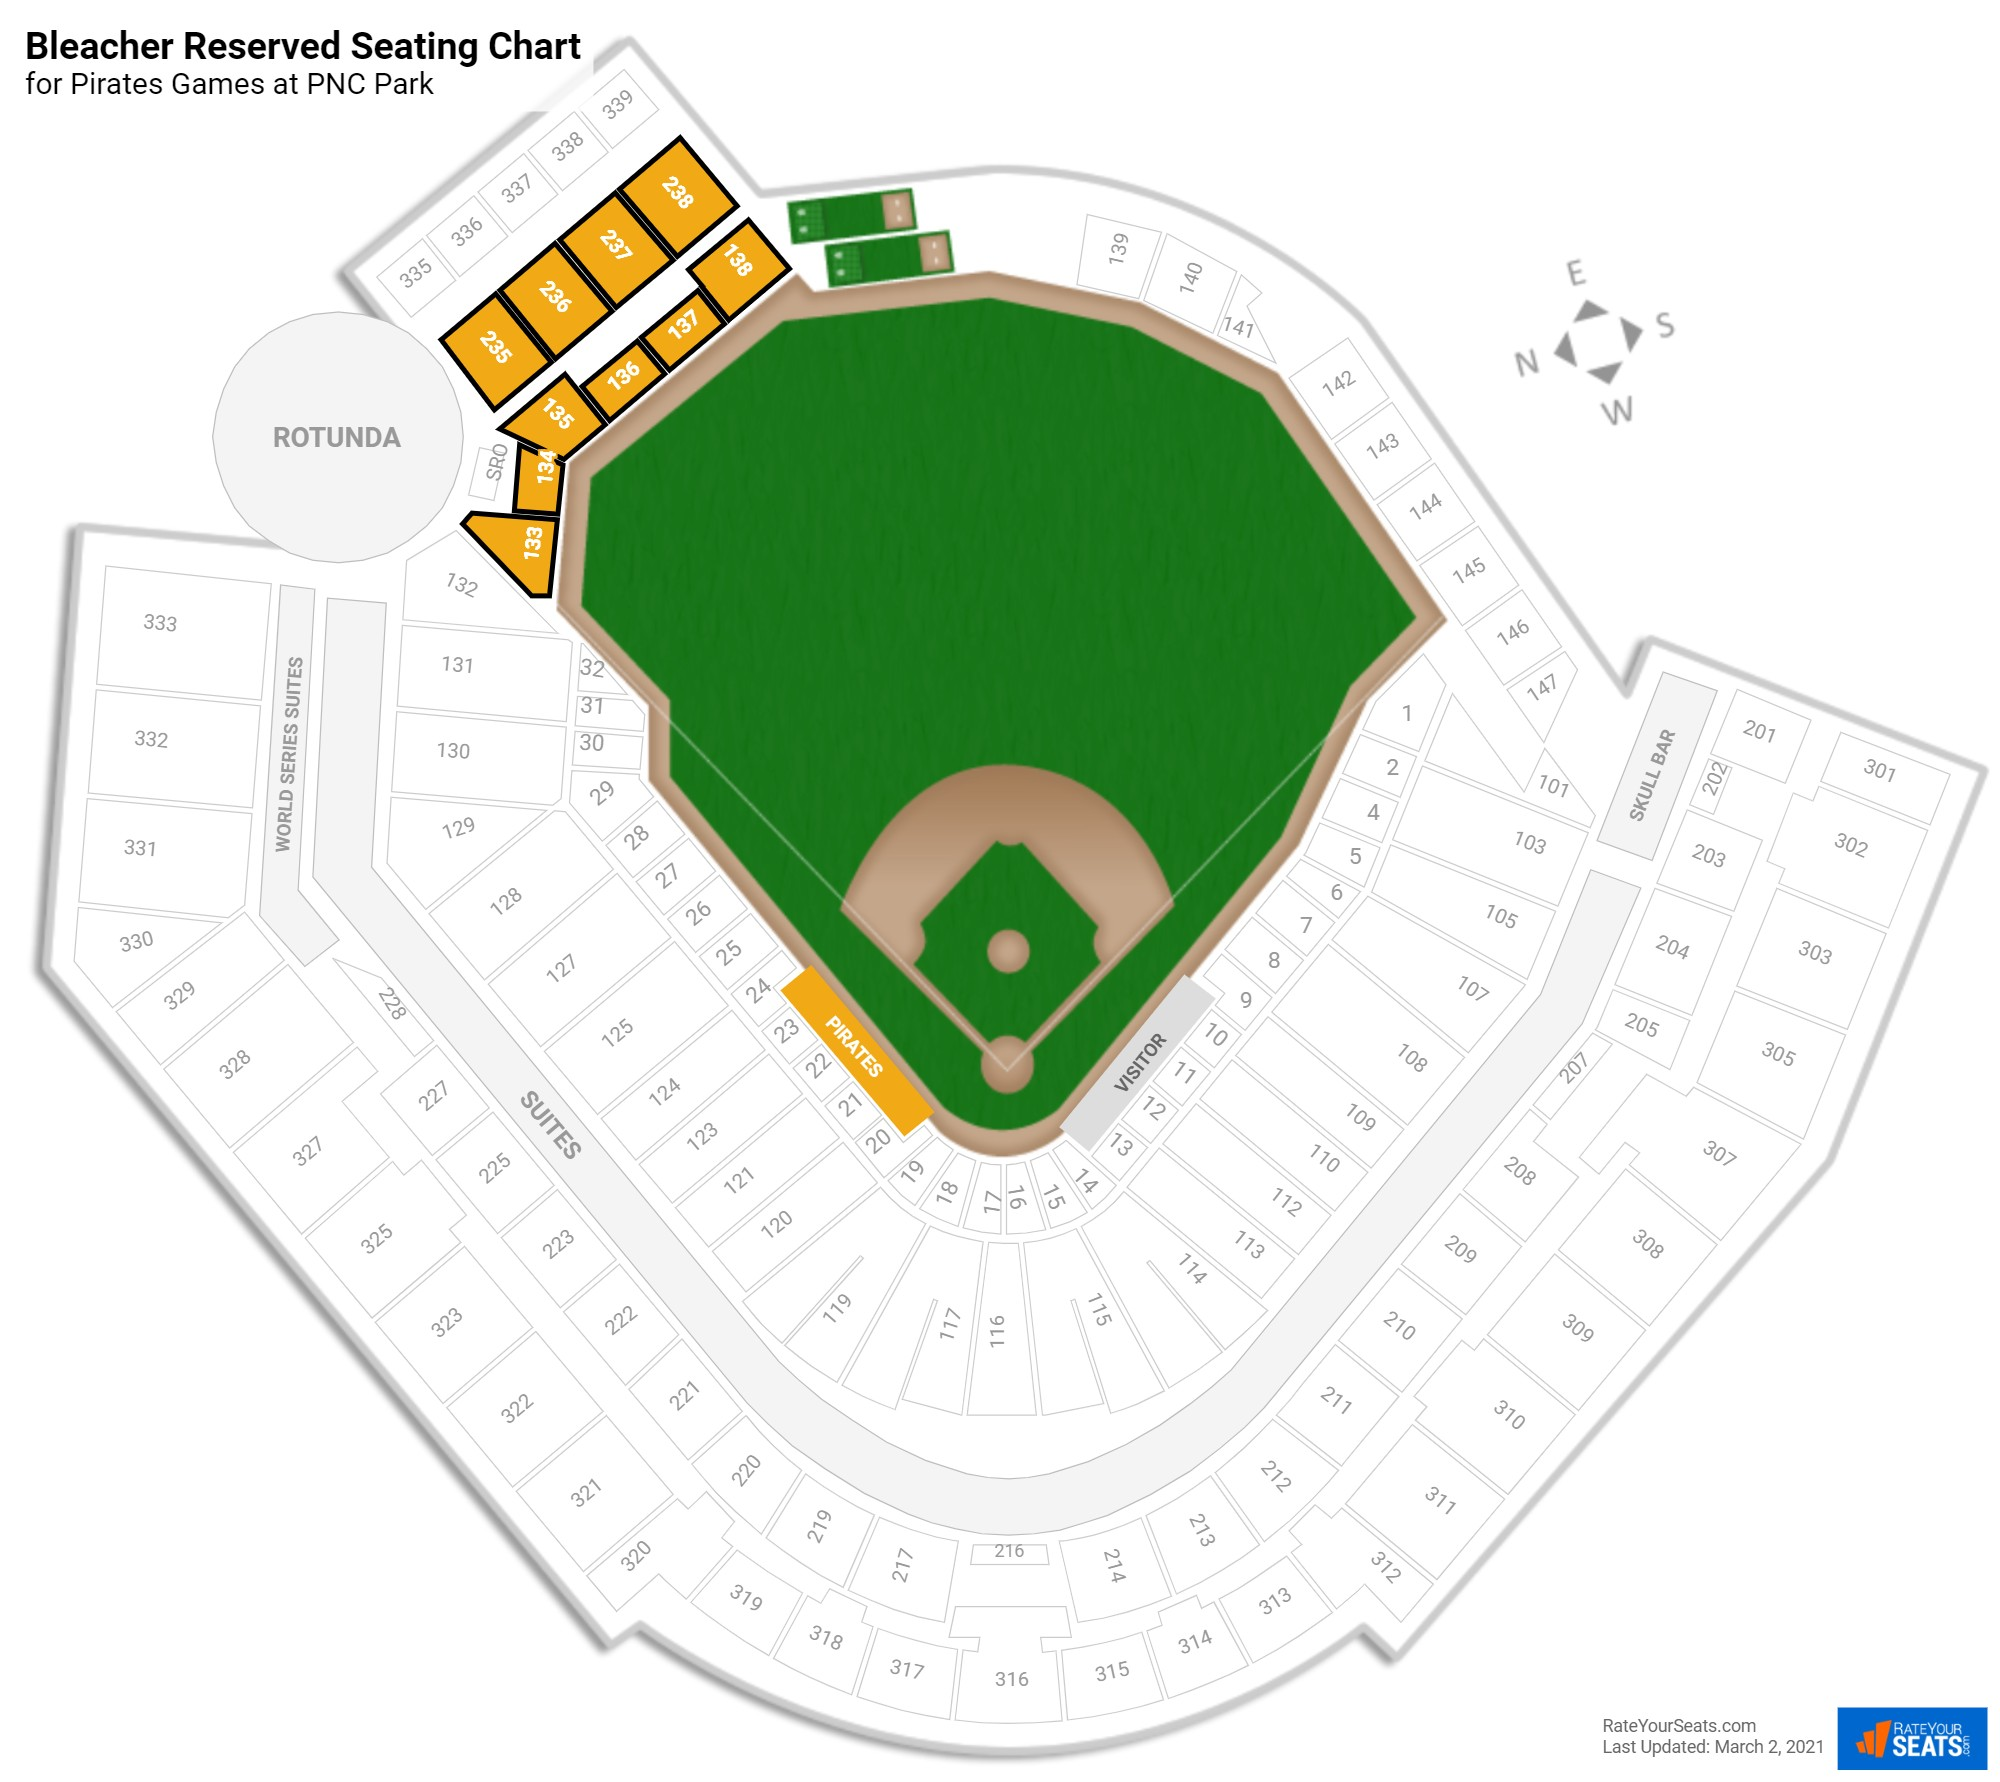 PNC Park Bleacher Reserved seating chart